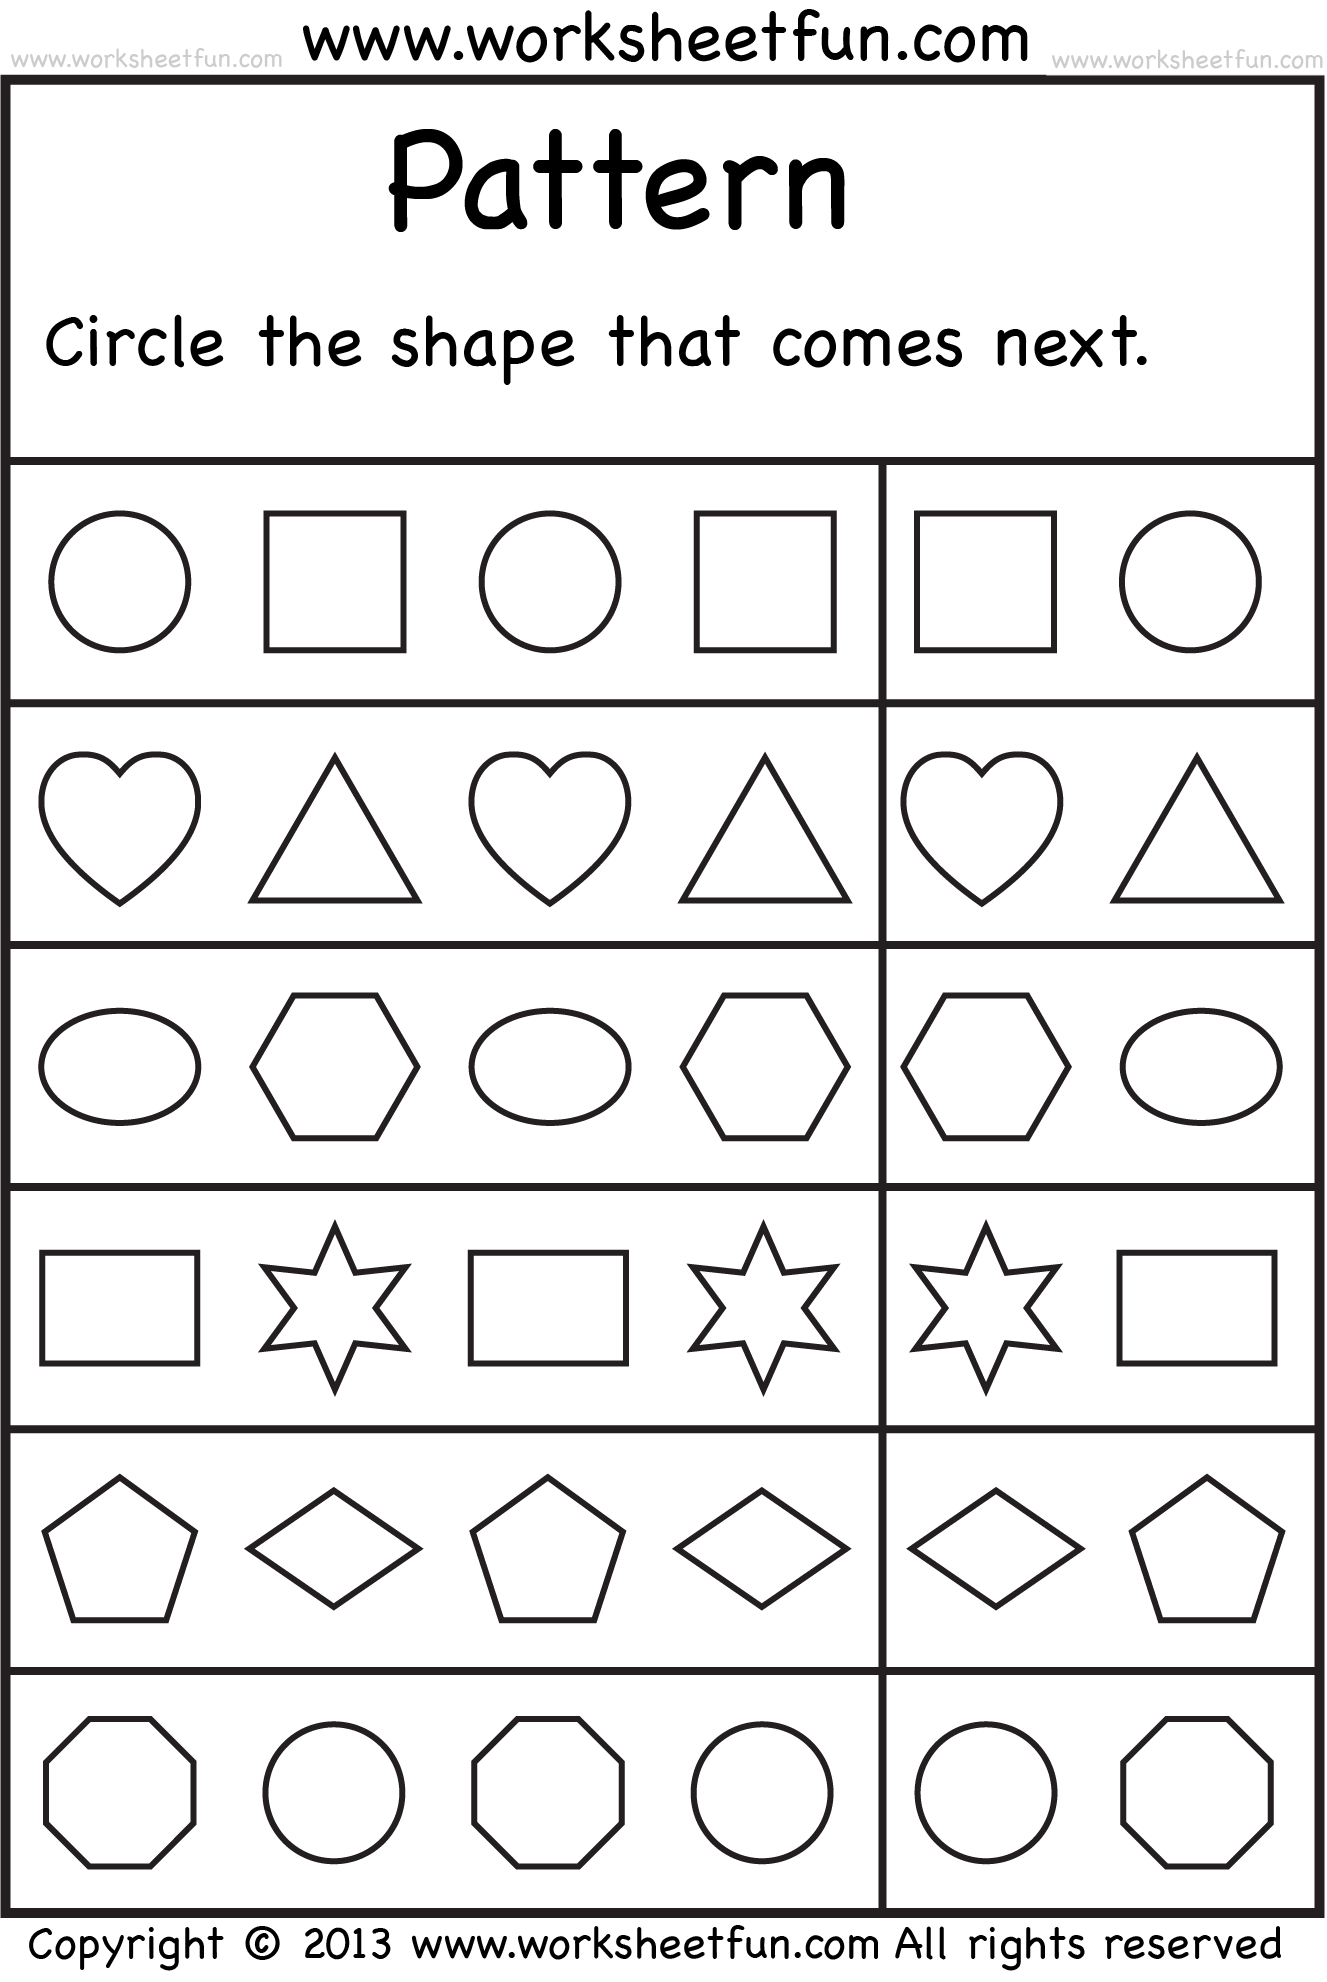 Weirdmailus  Sweet  Images About School Worksheets On Pinterest  Number Words  With Extraordinary  Images About School Worksheets On Pinterest  Number Words Alphabet Worksheets And Free Printable Kindergarten Worksheets With Astonishing Bible Trivia Worksheets Also Temperature Graph Worksheet In Addition Worksheet On Adverbs For Grade  And Fractions Of Amounts Worksheets As Well As Worksheet For Noun Additionally Past Continuous Tense Worksheets From Pinterestcom With Weirdmailus  Extraordinary  Images About School Worksheets On Pinterest  Number Words  With Astonishing  Images About School Worksheets On Pinterest  Number Words Alphabet Worksheets And Free Printable Kindergarten Worksheets And Sweet Bible Trivia Worksheets Also Temperature Graph Worksheet In Addition Worksheet On Adverbs For Grade  From Pinterestcom